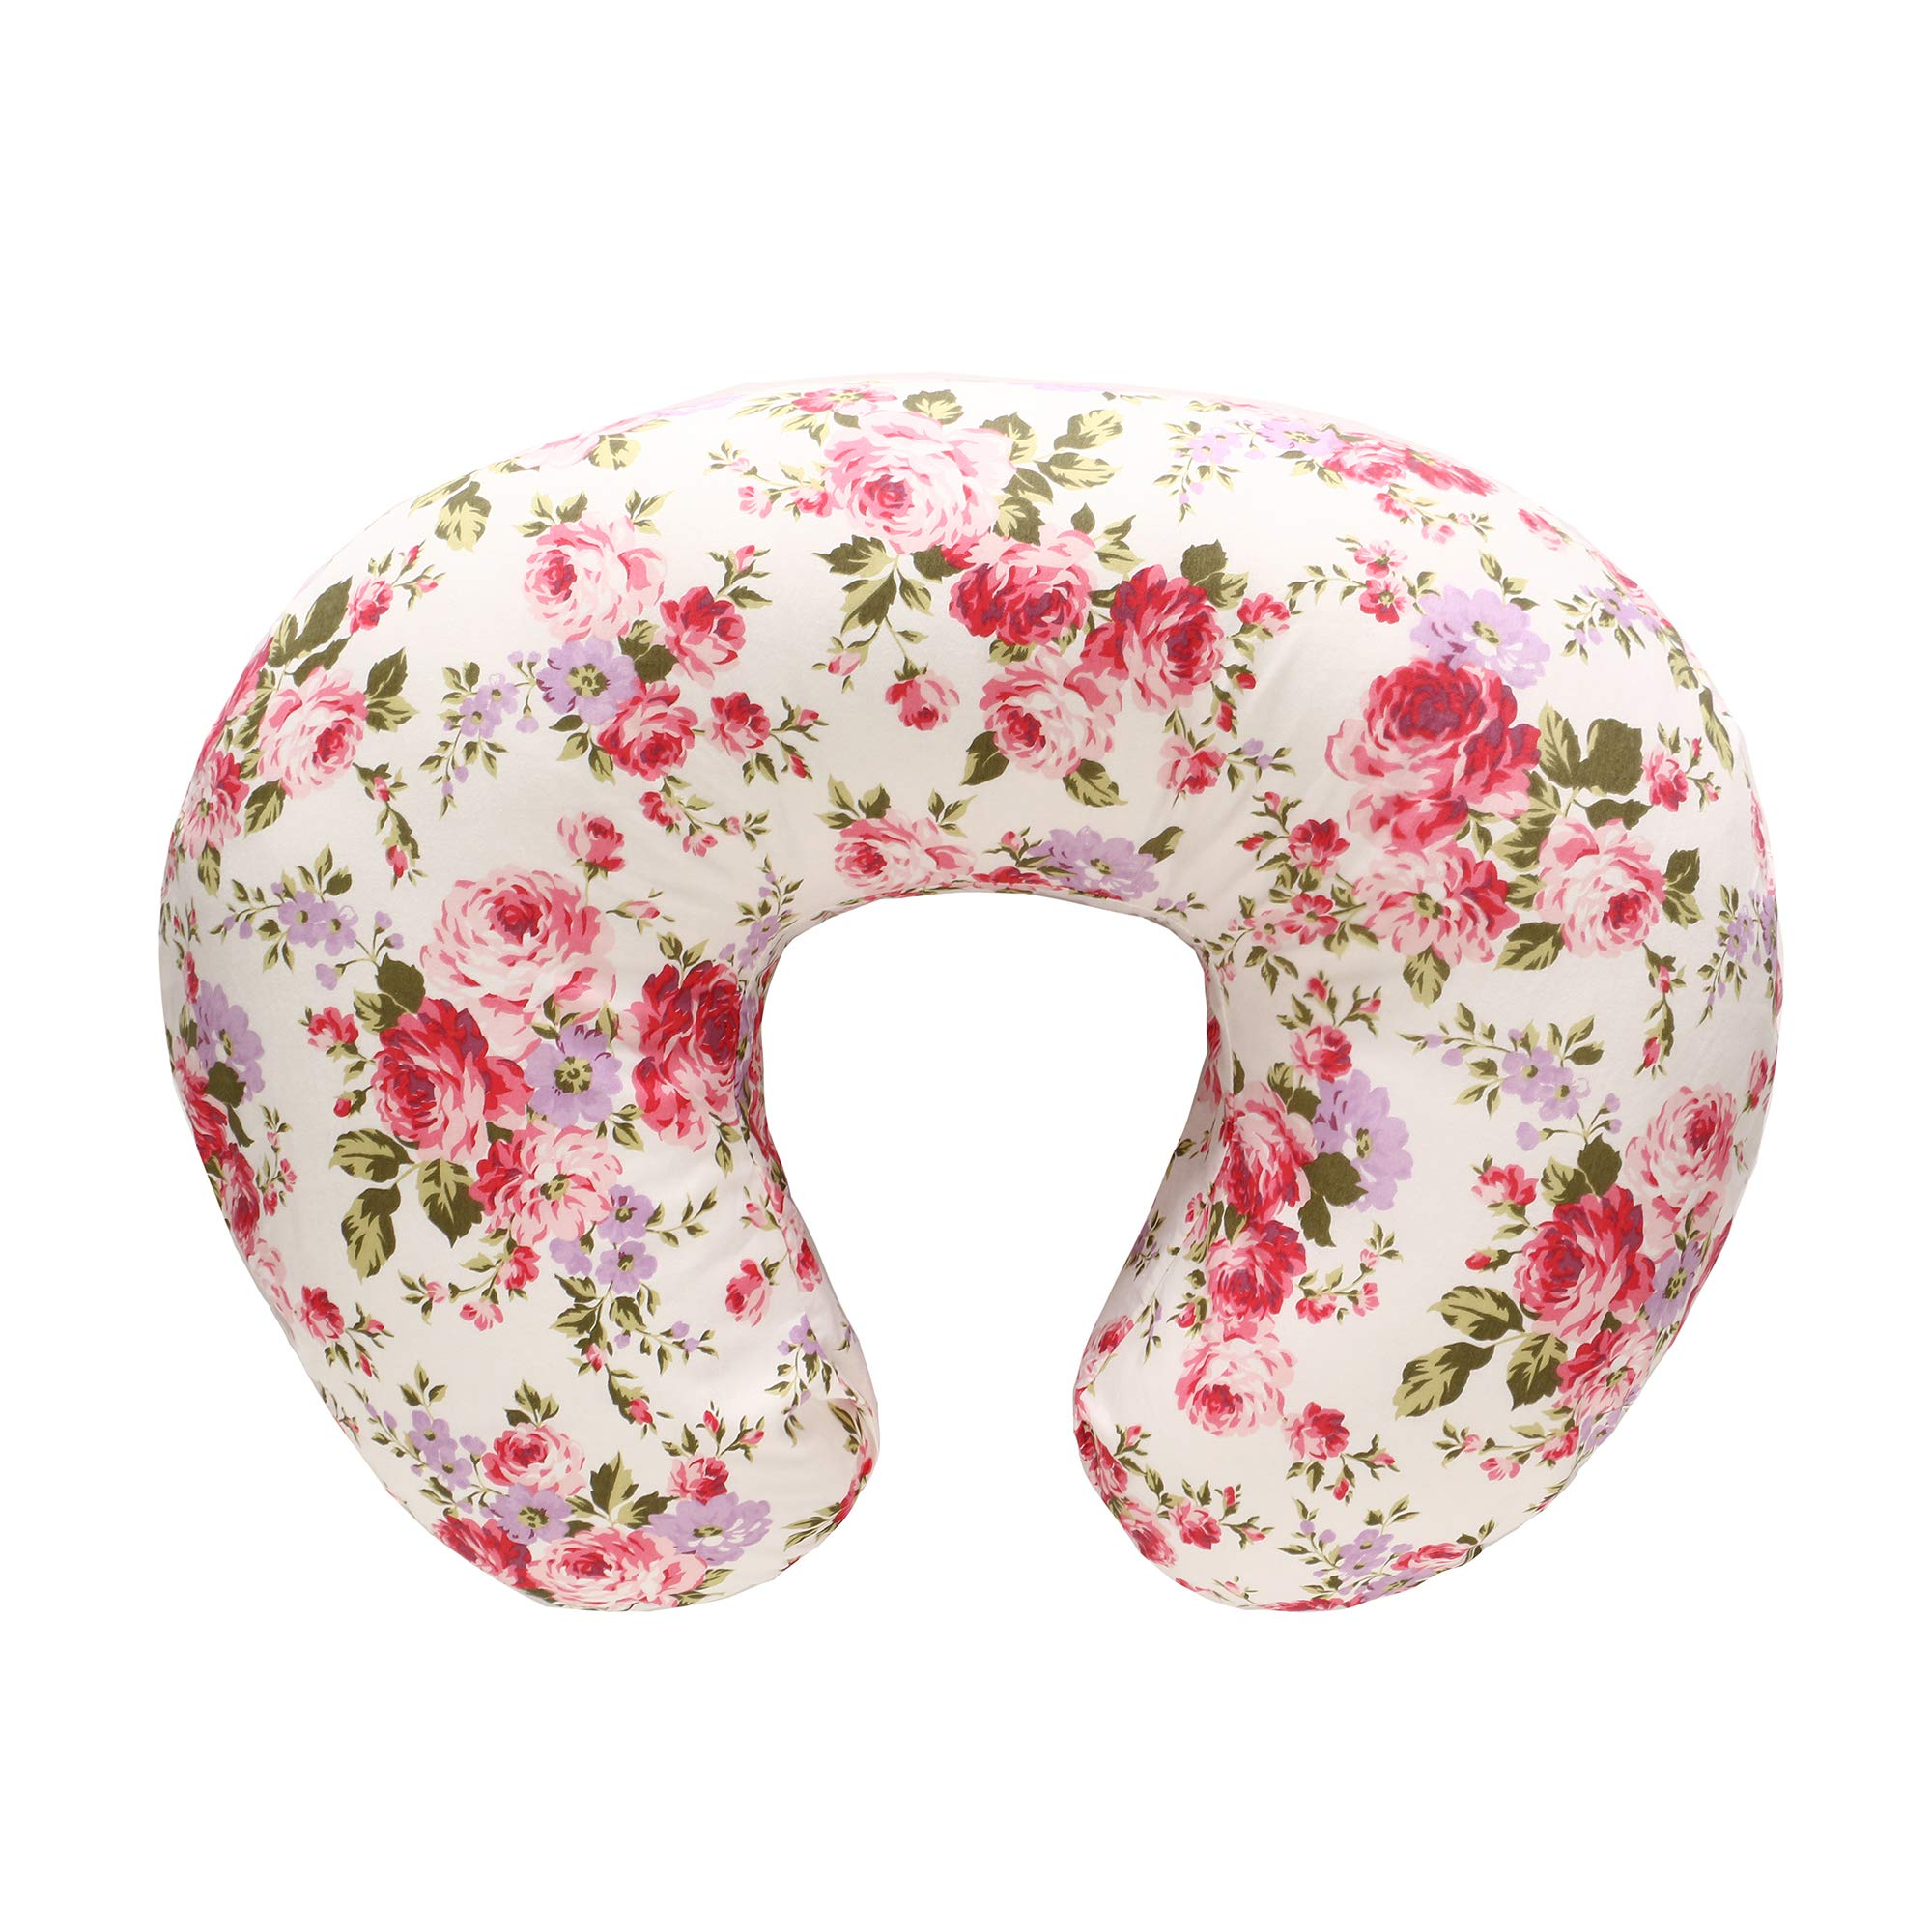 LAT Nursing Pillow and Positioner,Best for Mom Breastfeeding Pillow,100% Cotton Soft Fits Snug On Infant,Aseptic Vacuum Packaging(Flower) by LAT LEE AND TOWN